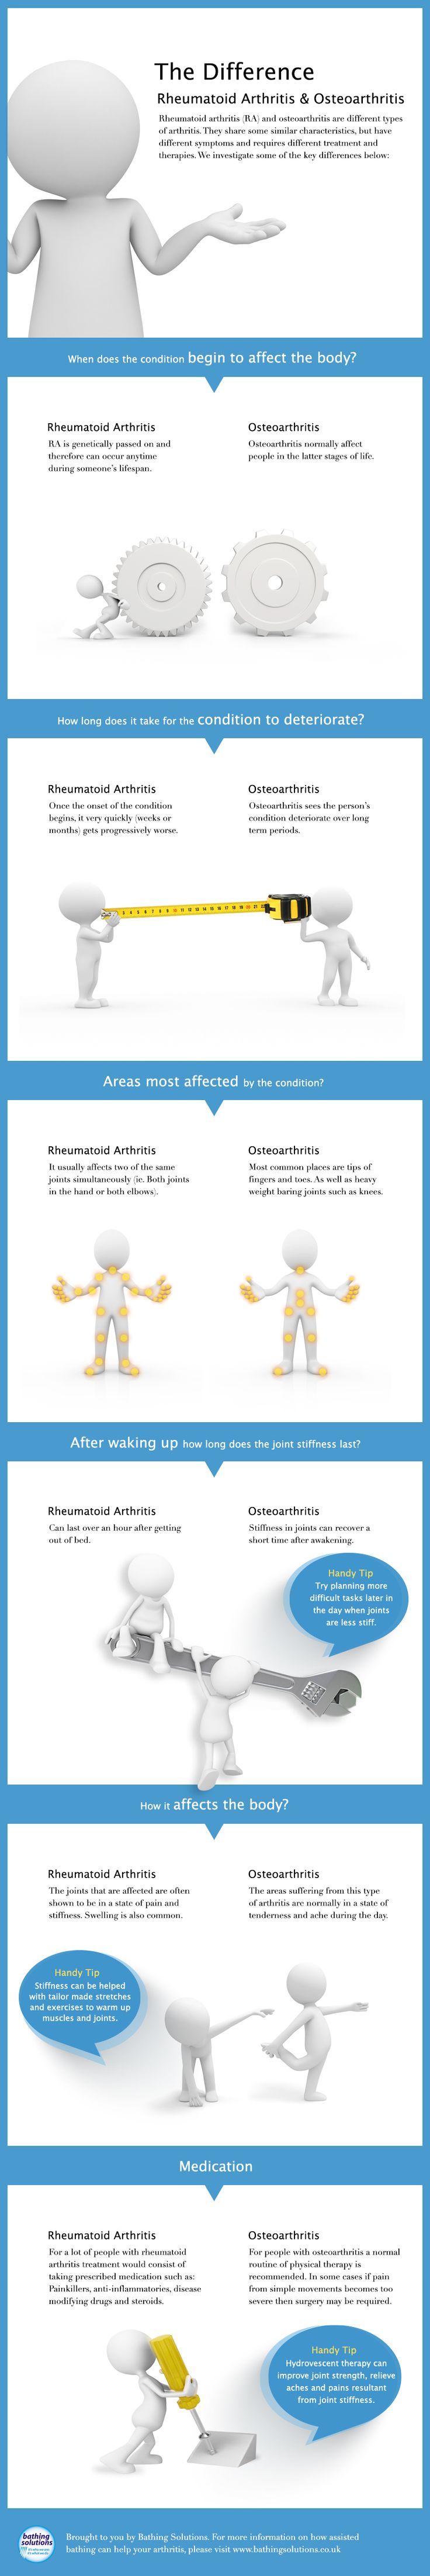 Infographic explaining differences between Rheumatoid Arthritis and Osteoarthritis - Do you fancy an infographic? There are a lot of them online, but if you want your own please visit http://www.linfografico.com/prezzi/ Online girano molte infografiche, se ne vuoi realizzare una tutta tua visita http://www.linfografico.com/prezzi/